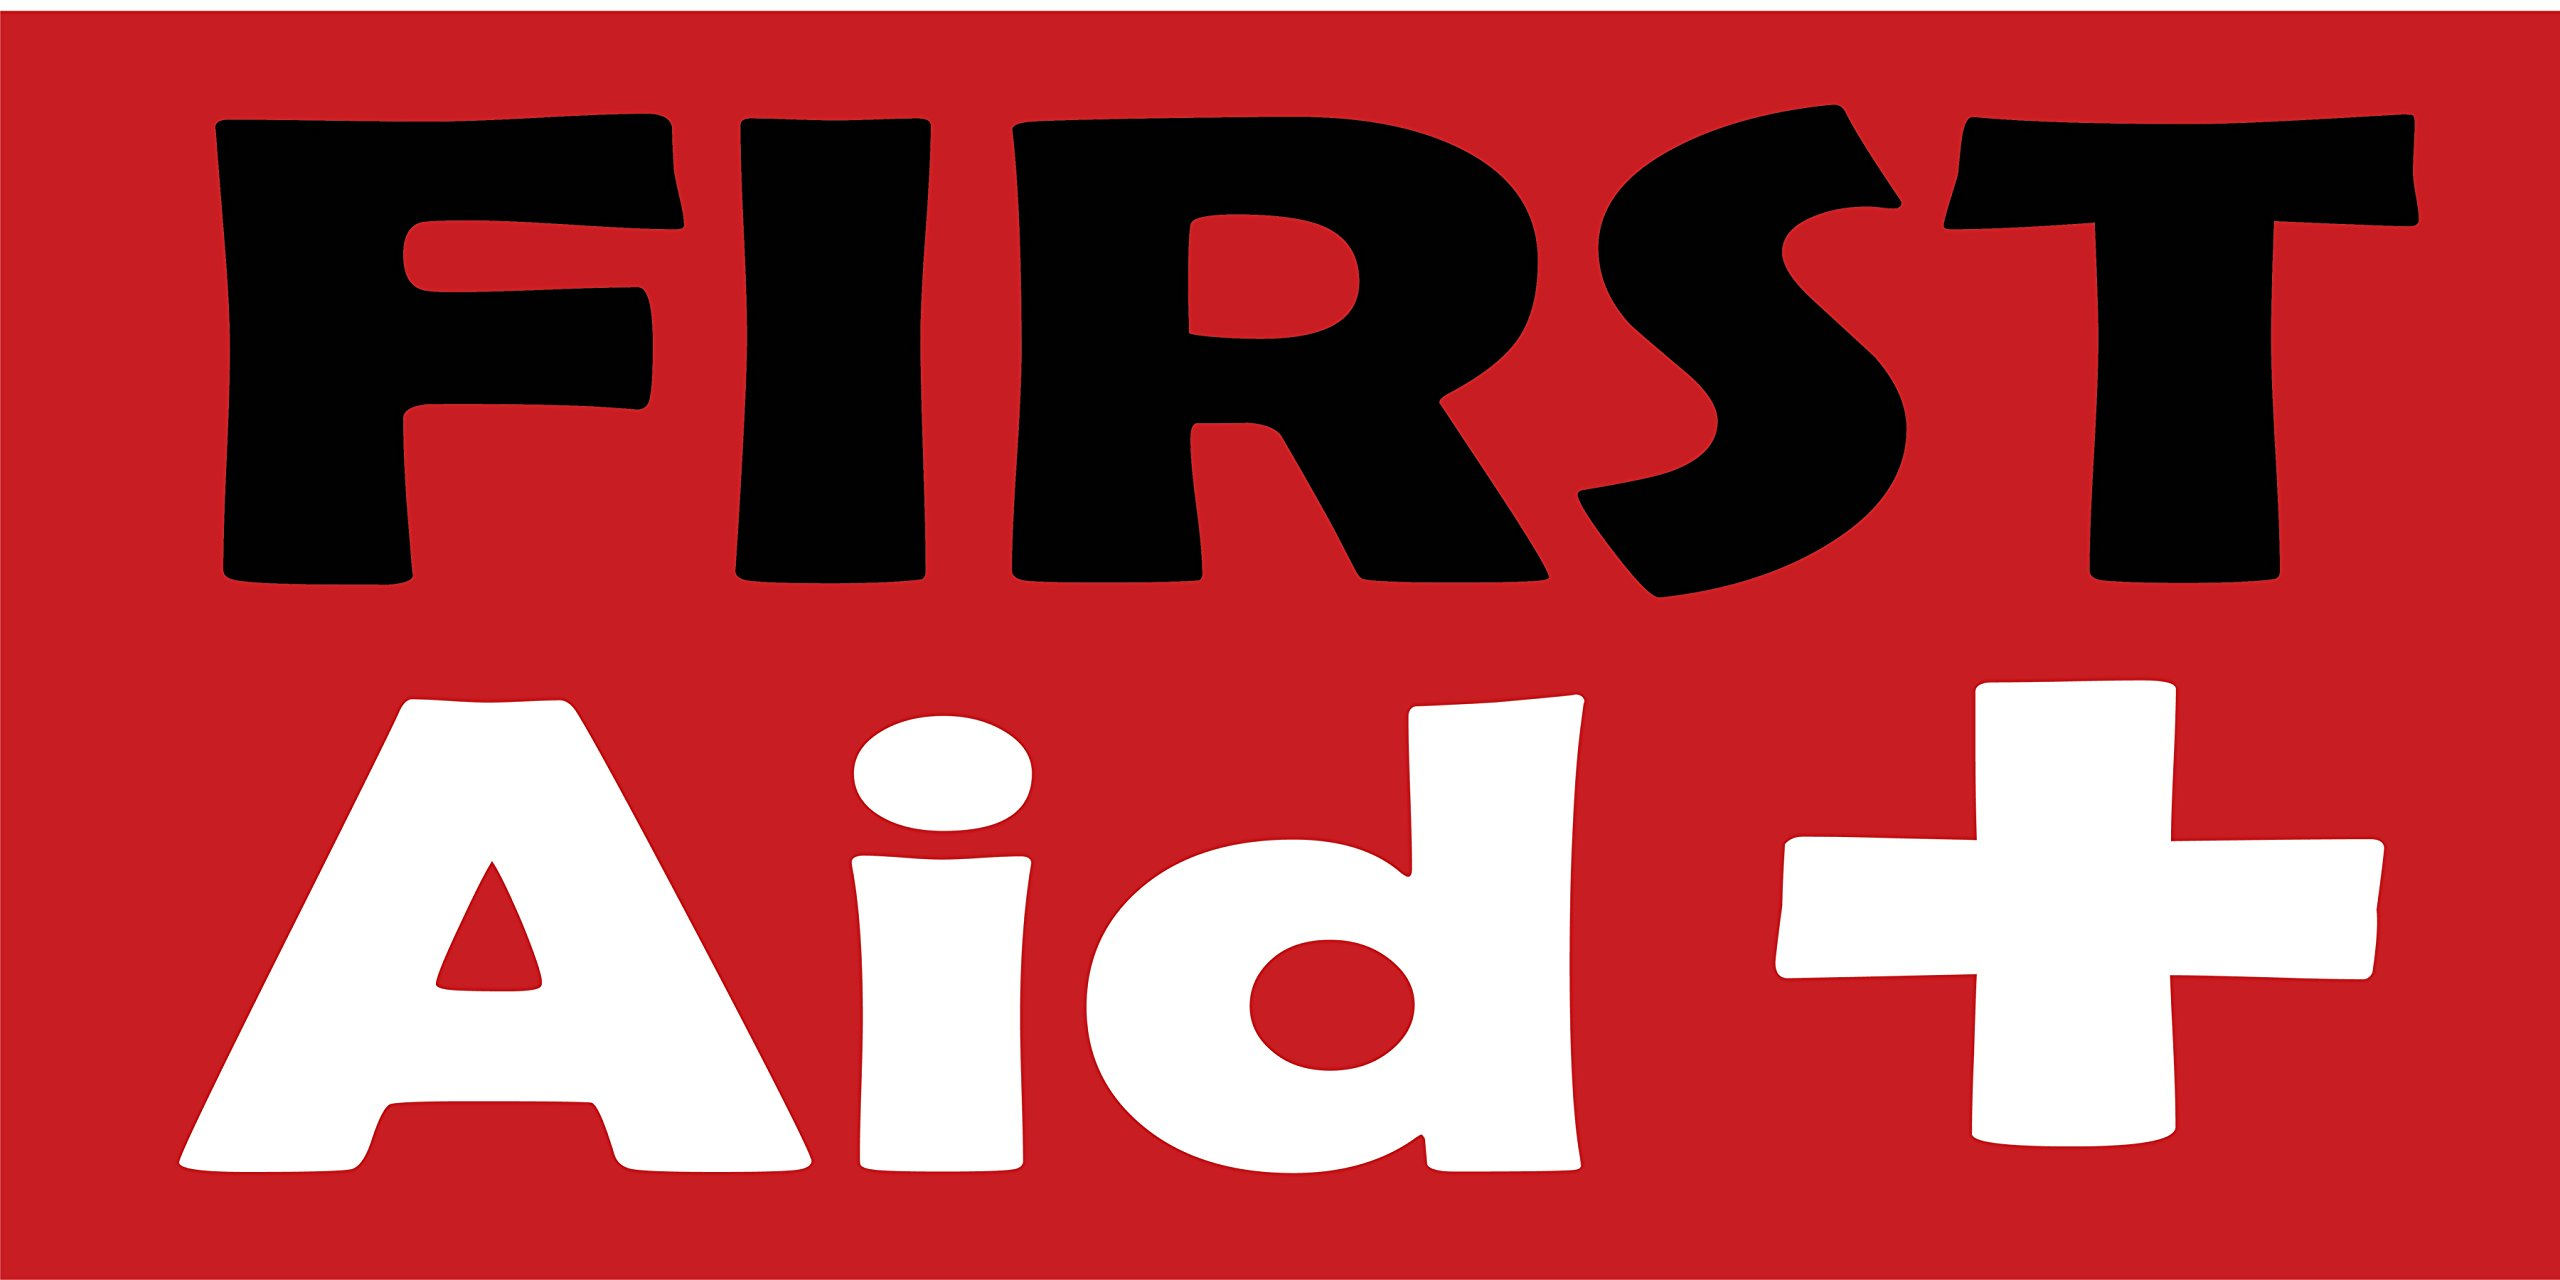 Pre-Printed - First Aid Banner - Red4 (10' x 5')